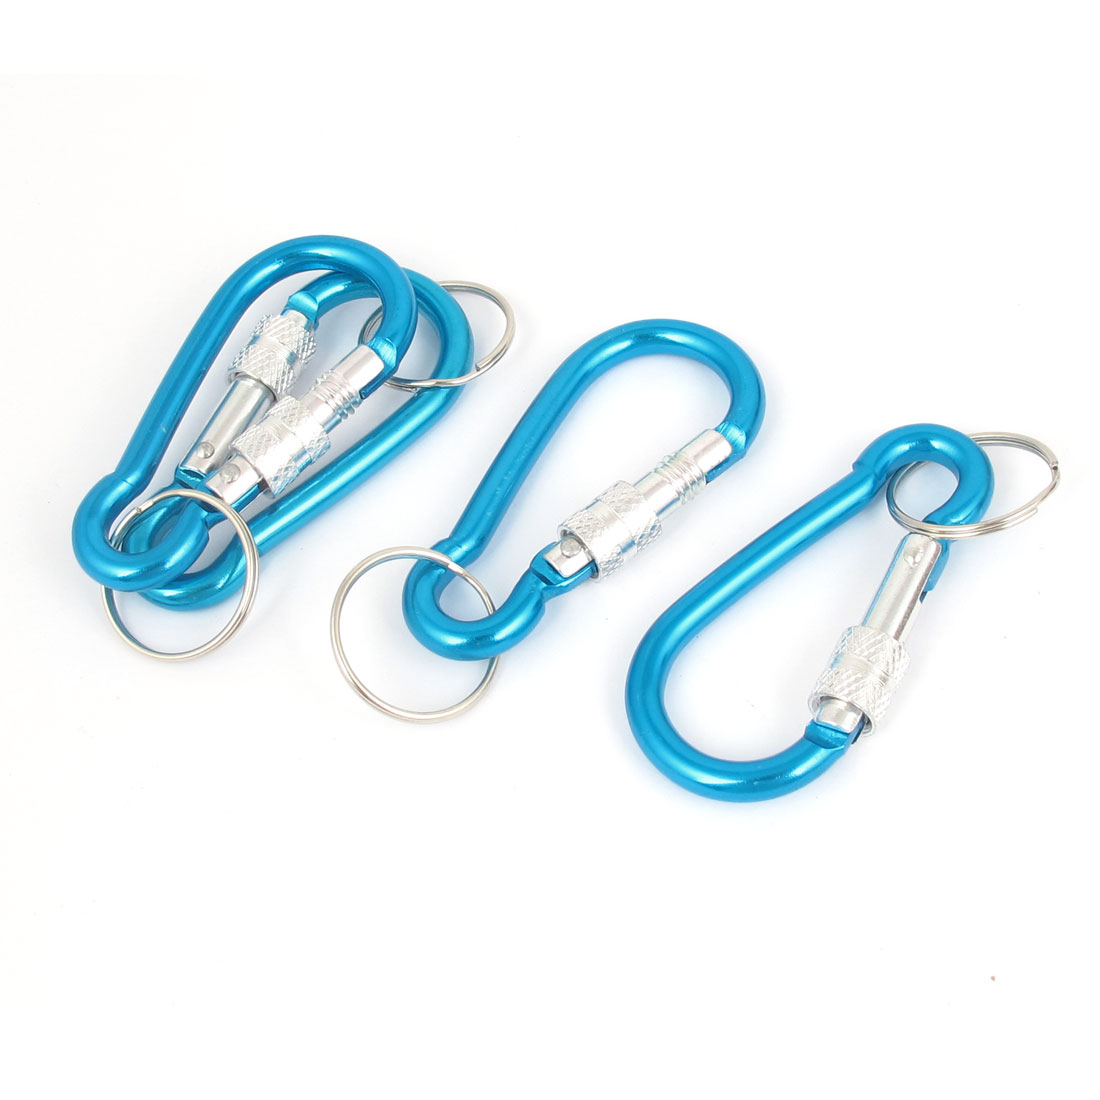 4pcs Blue Metal Carabiner Clamp Spring Gate Clip Split Key Ring Chain Keyring Keychain